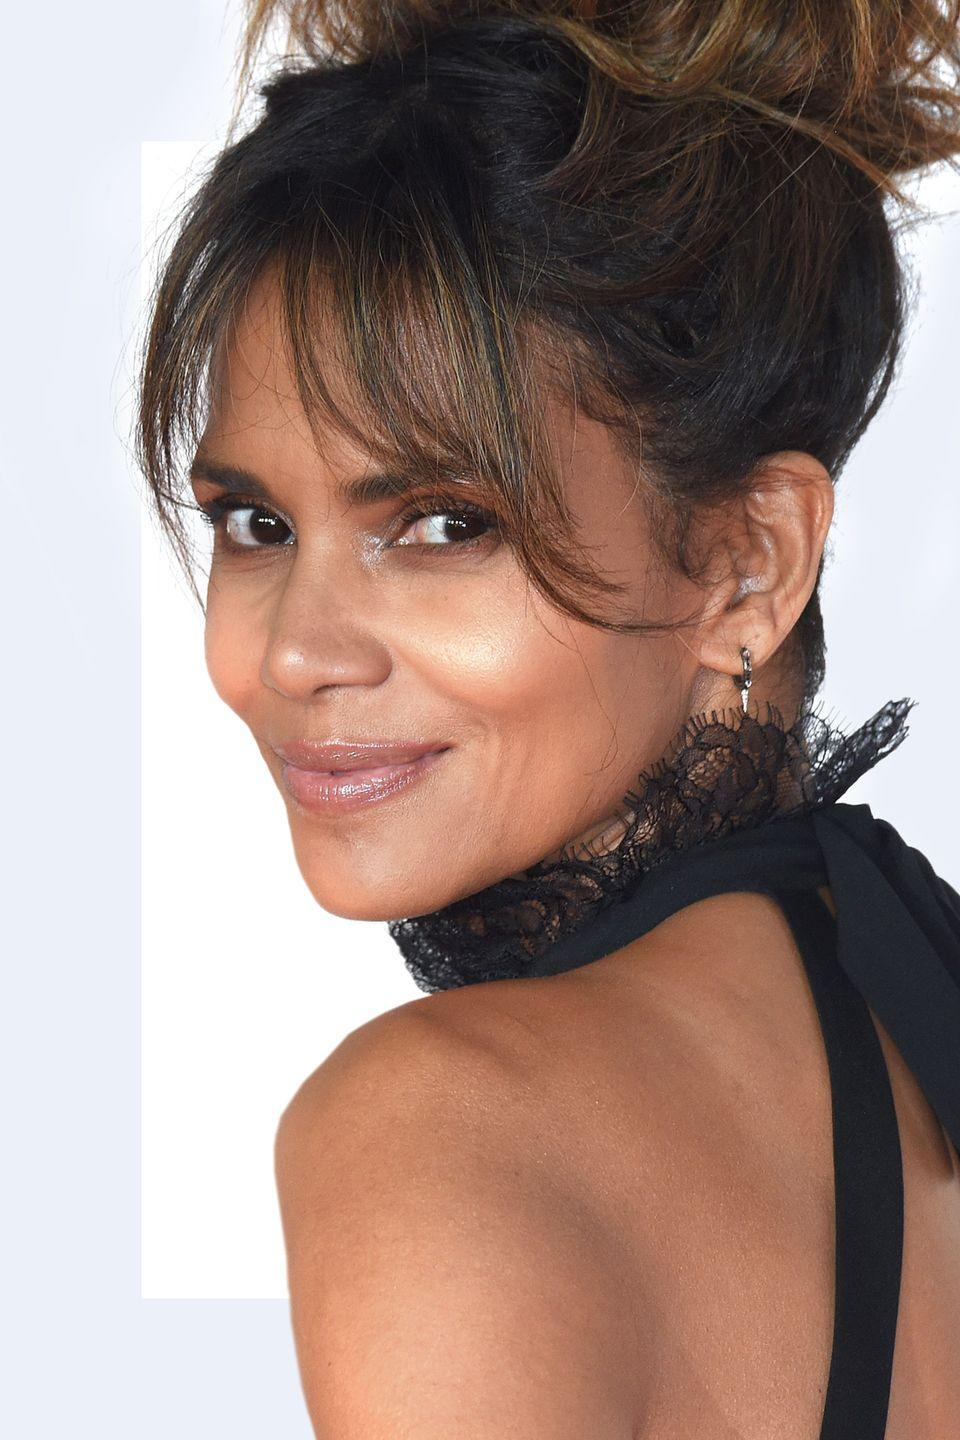 """<p>""""<strong>Longer bangs are ideal to help mask the aging process since it softens the facial features,</strong> emphasizes the eyes and also can discreetly hide fine lines and wrinkles. It's best to add layers so that there is movement and texture, rather than having stiff, coiffed hair that looks like a helmet.""""—<em>Frederic Moine, celebrity hairstylist</em></p>"""